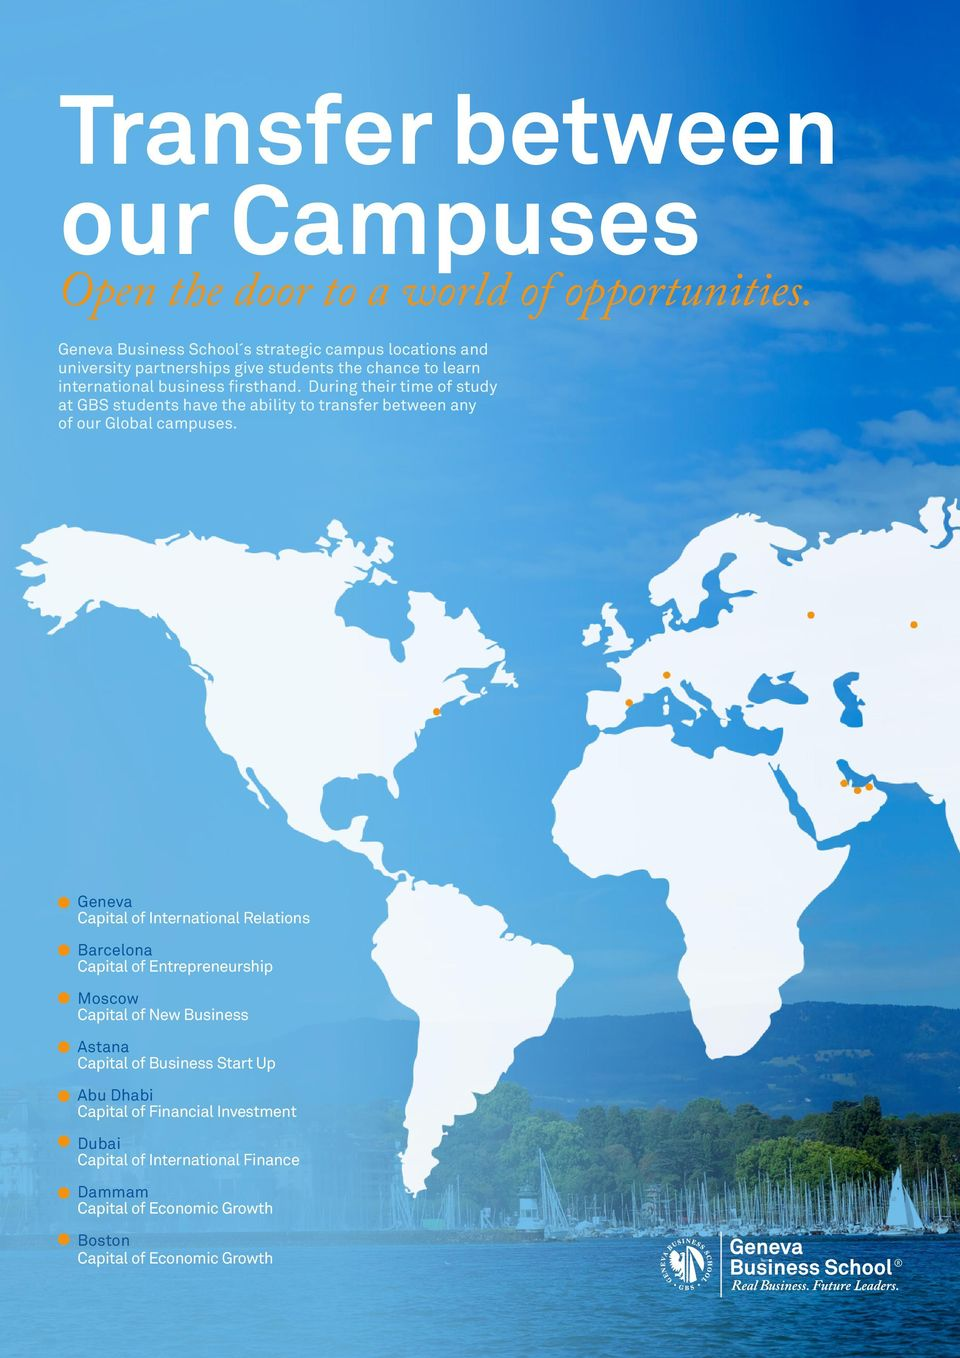 During their time of study at GBS students have the ability to transfer between any of our Global campuses.